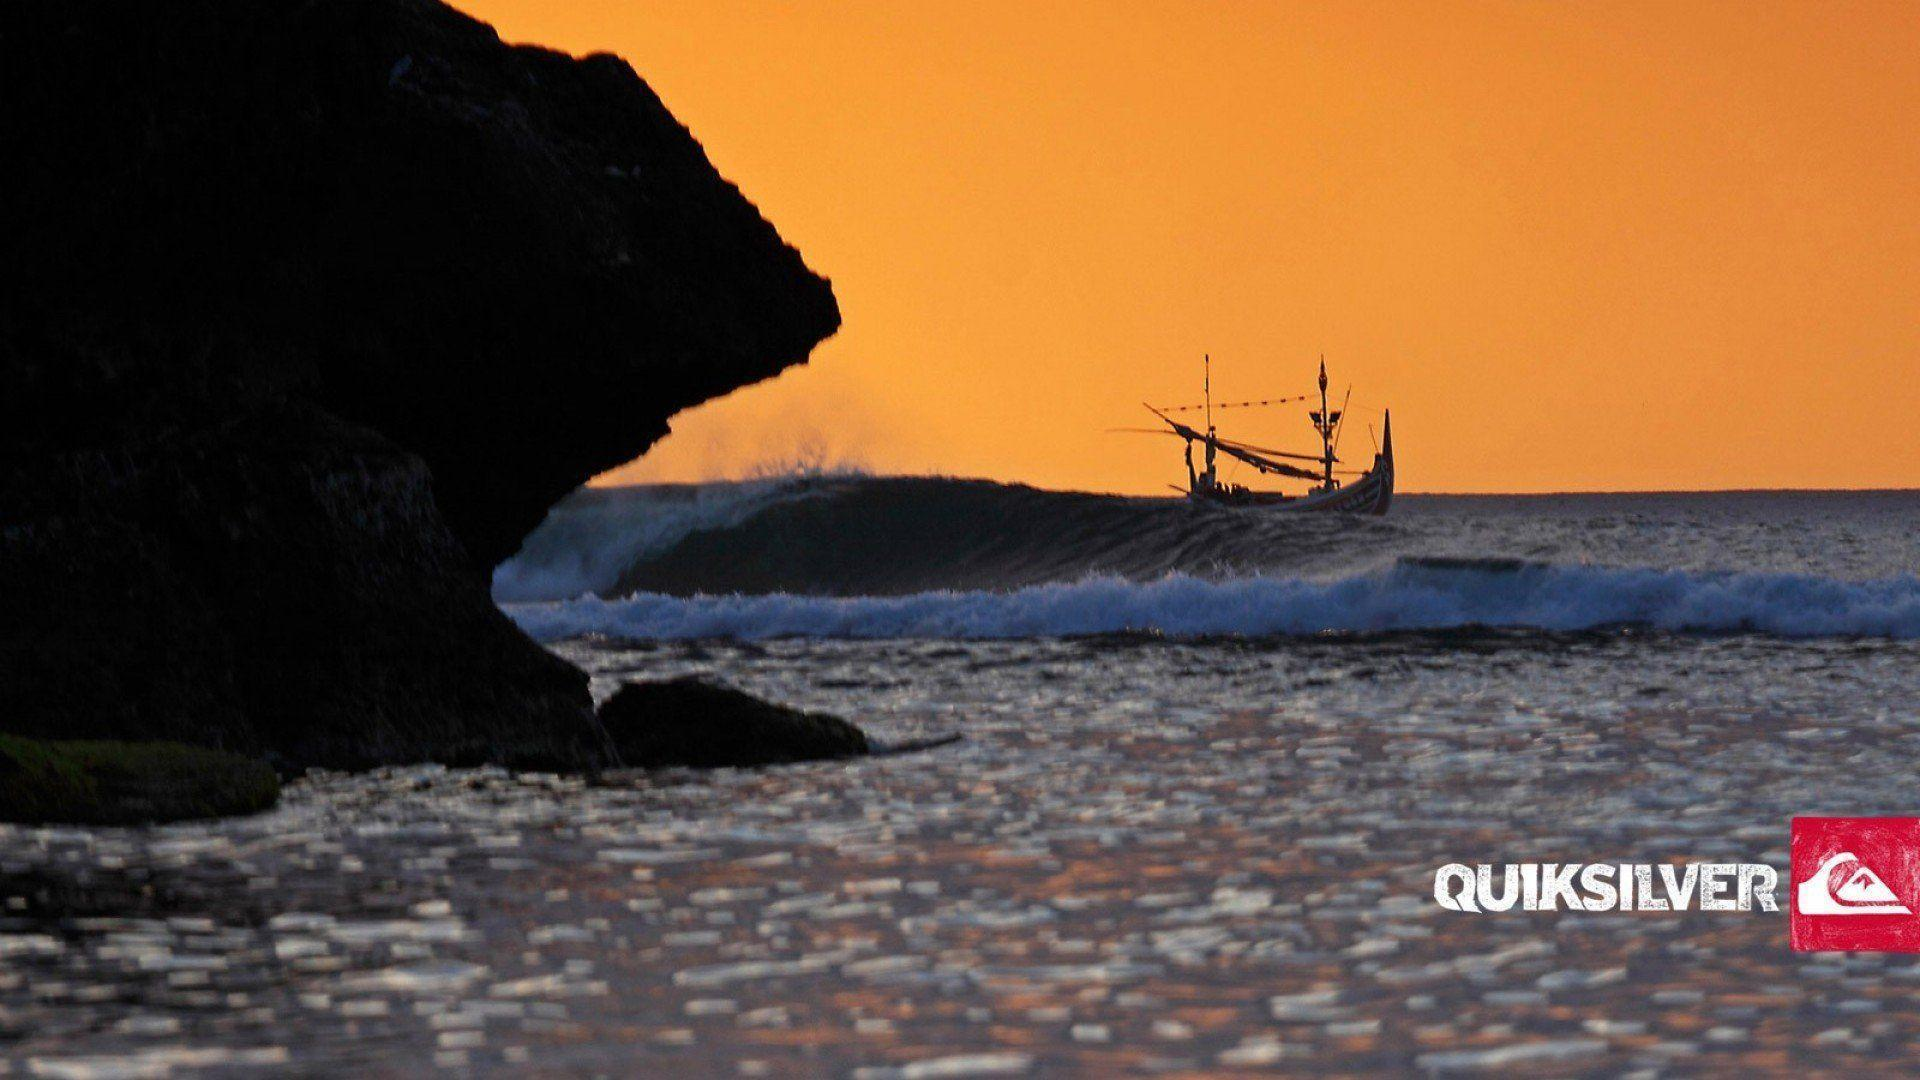 quiksilver surf wallpaper hd - photo #2